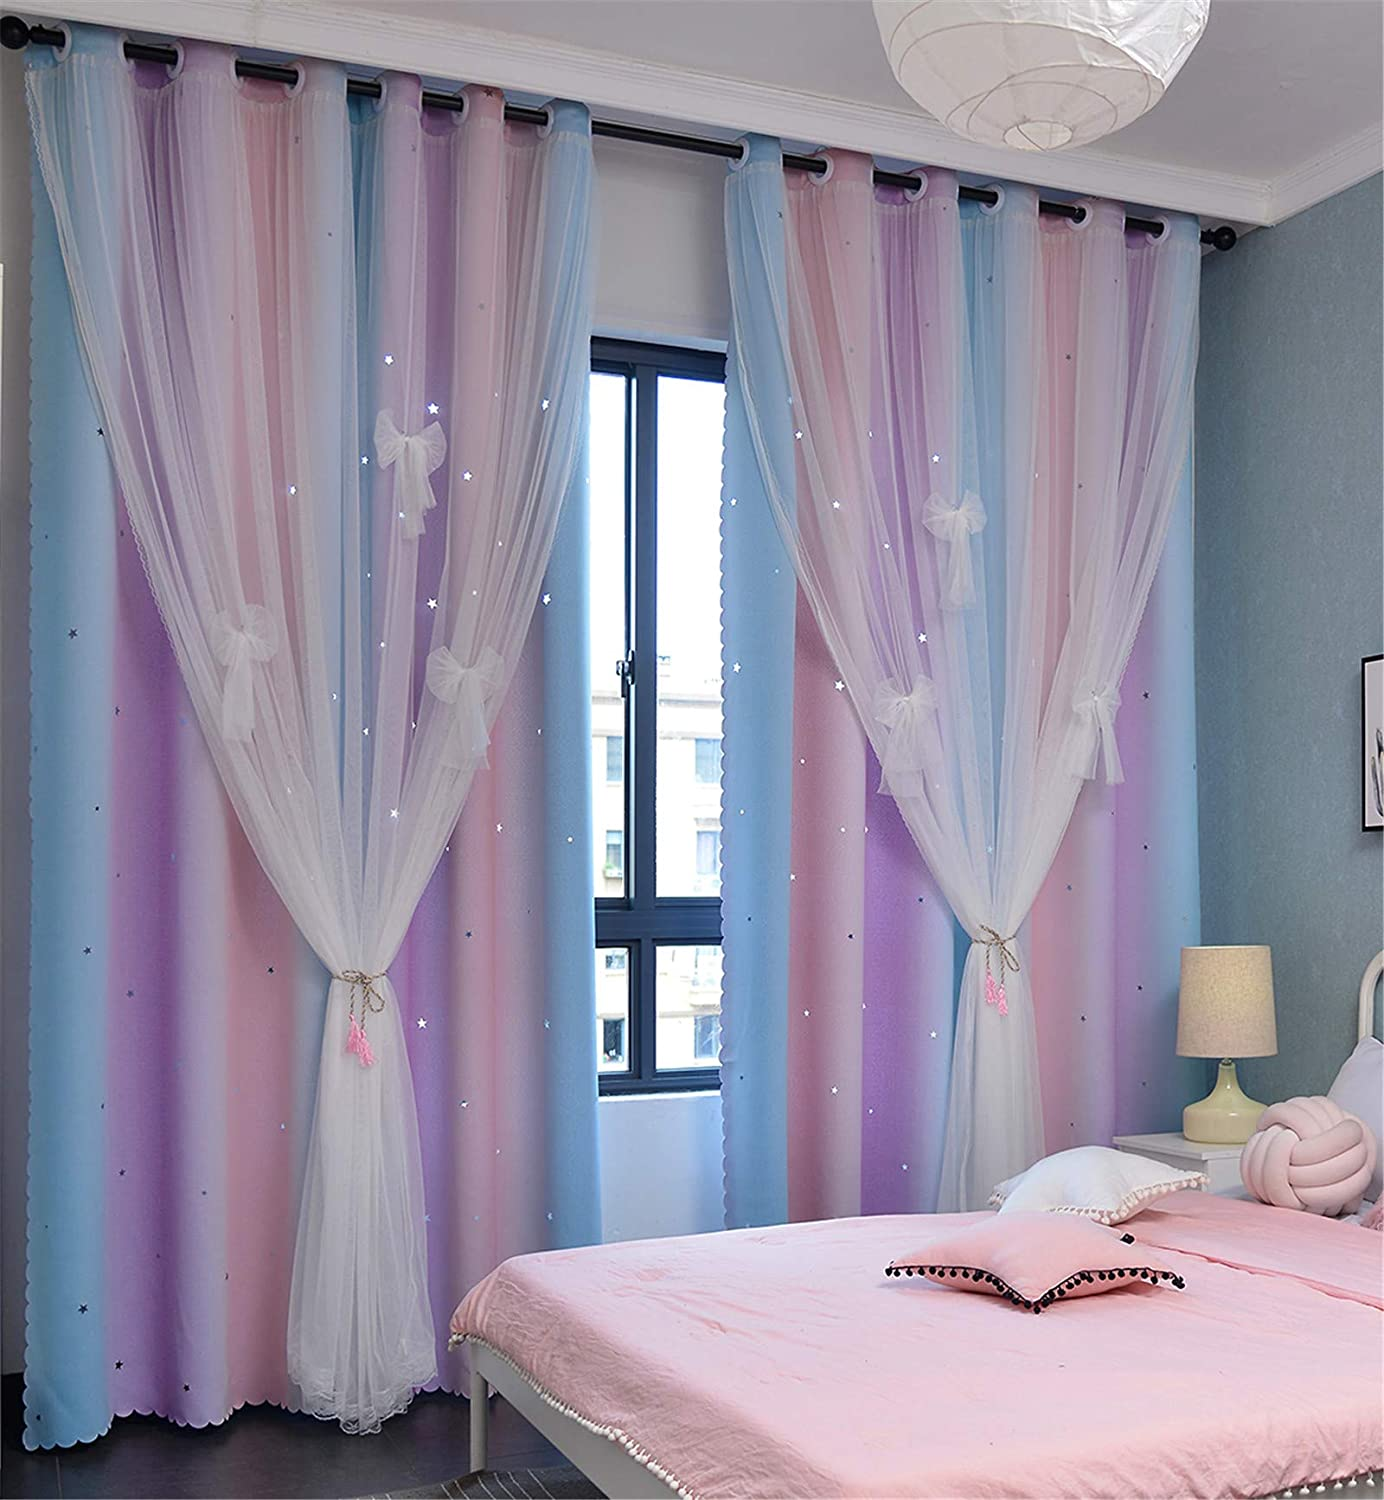 Room Darkening Blackout Star Kids Curtains 84 inches Long Lace Drapes 2 Layers Window Panels Bedroom Living Room Decor Divider (Pink Purple Green, W52 X L84)